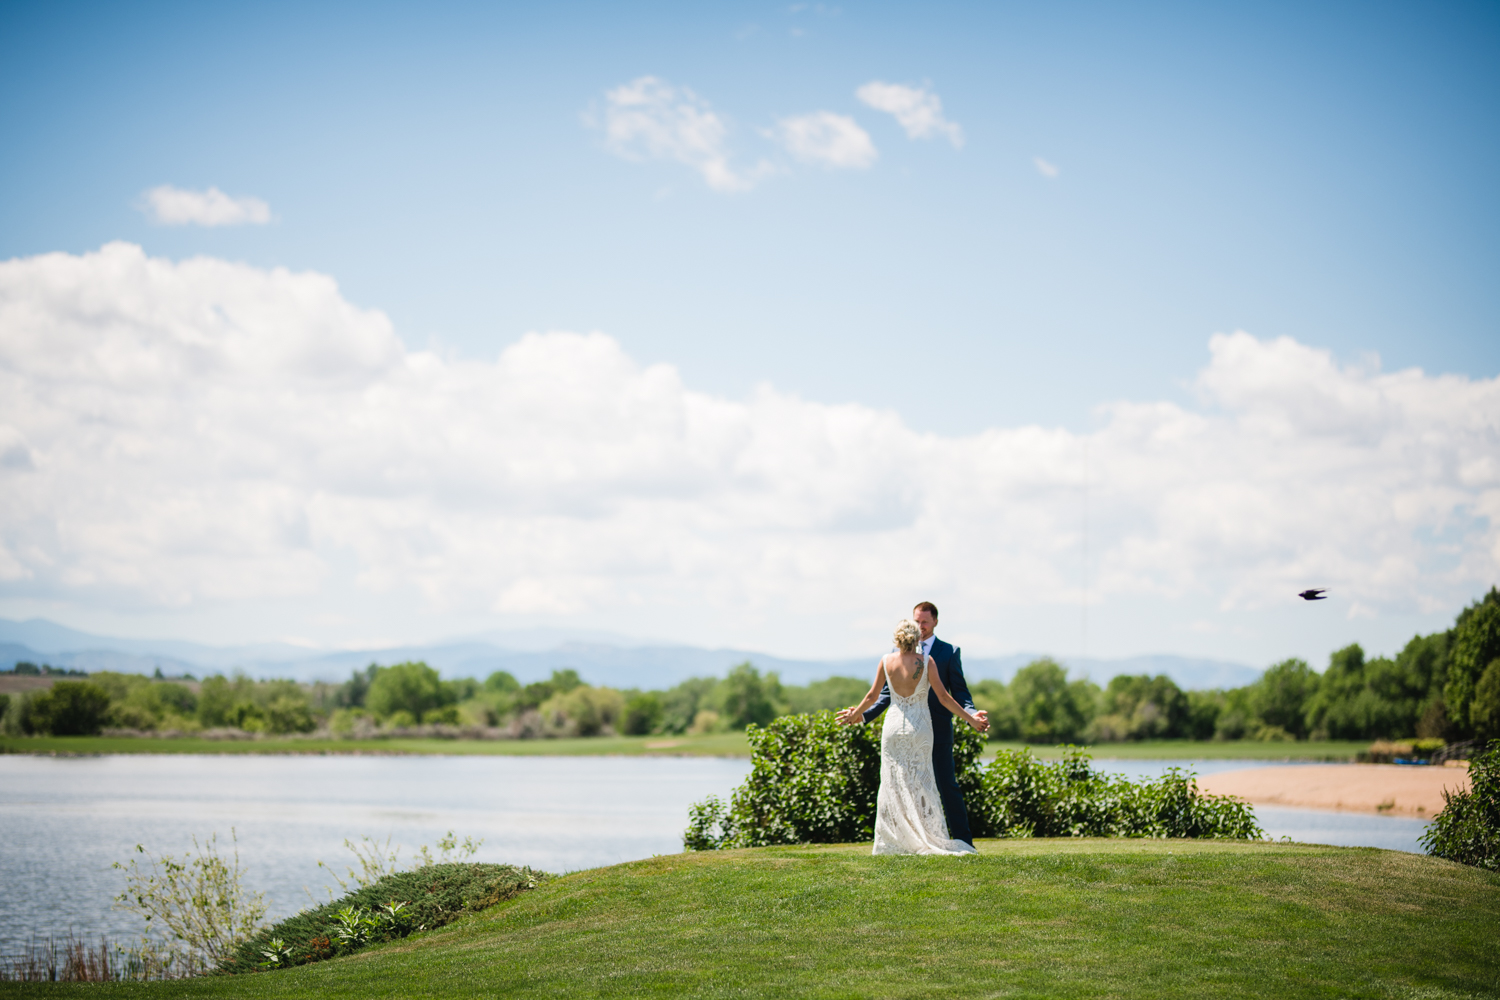 PHOCO Photography Dani Sam Wedding Island Pelican Lakes Colorado-1.jpg